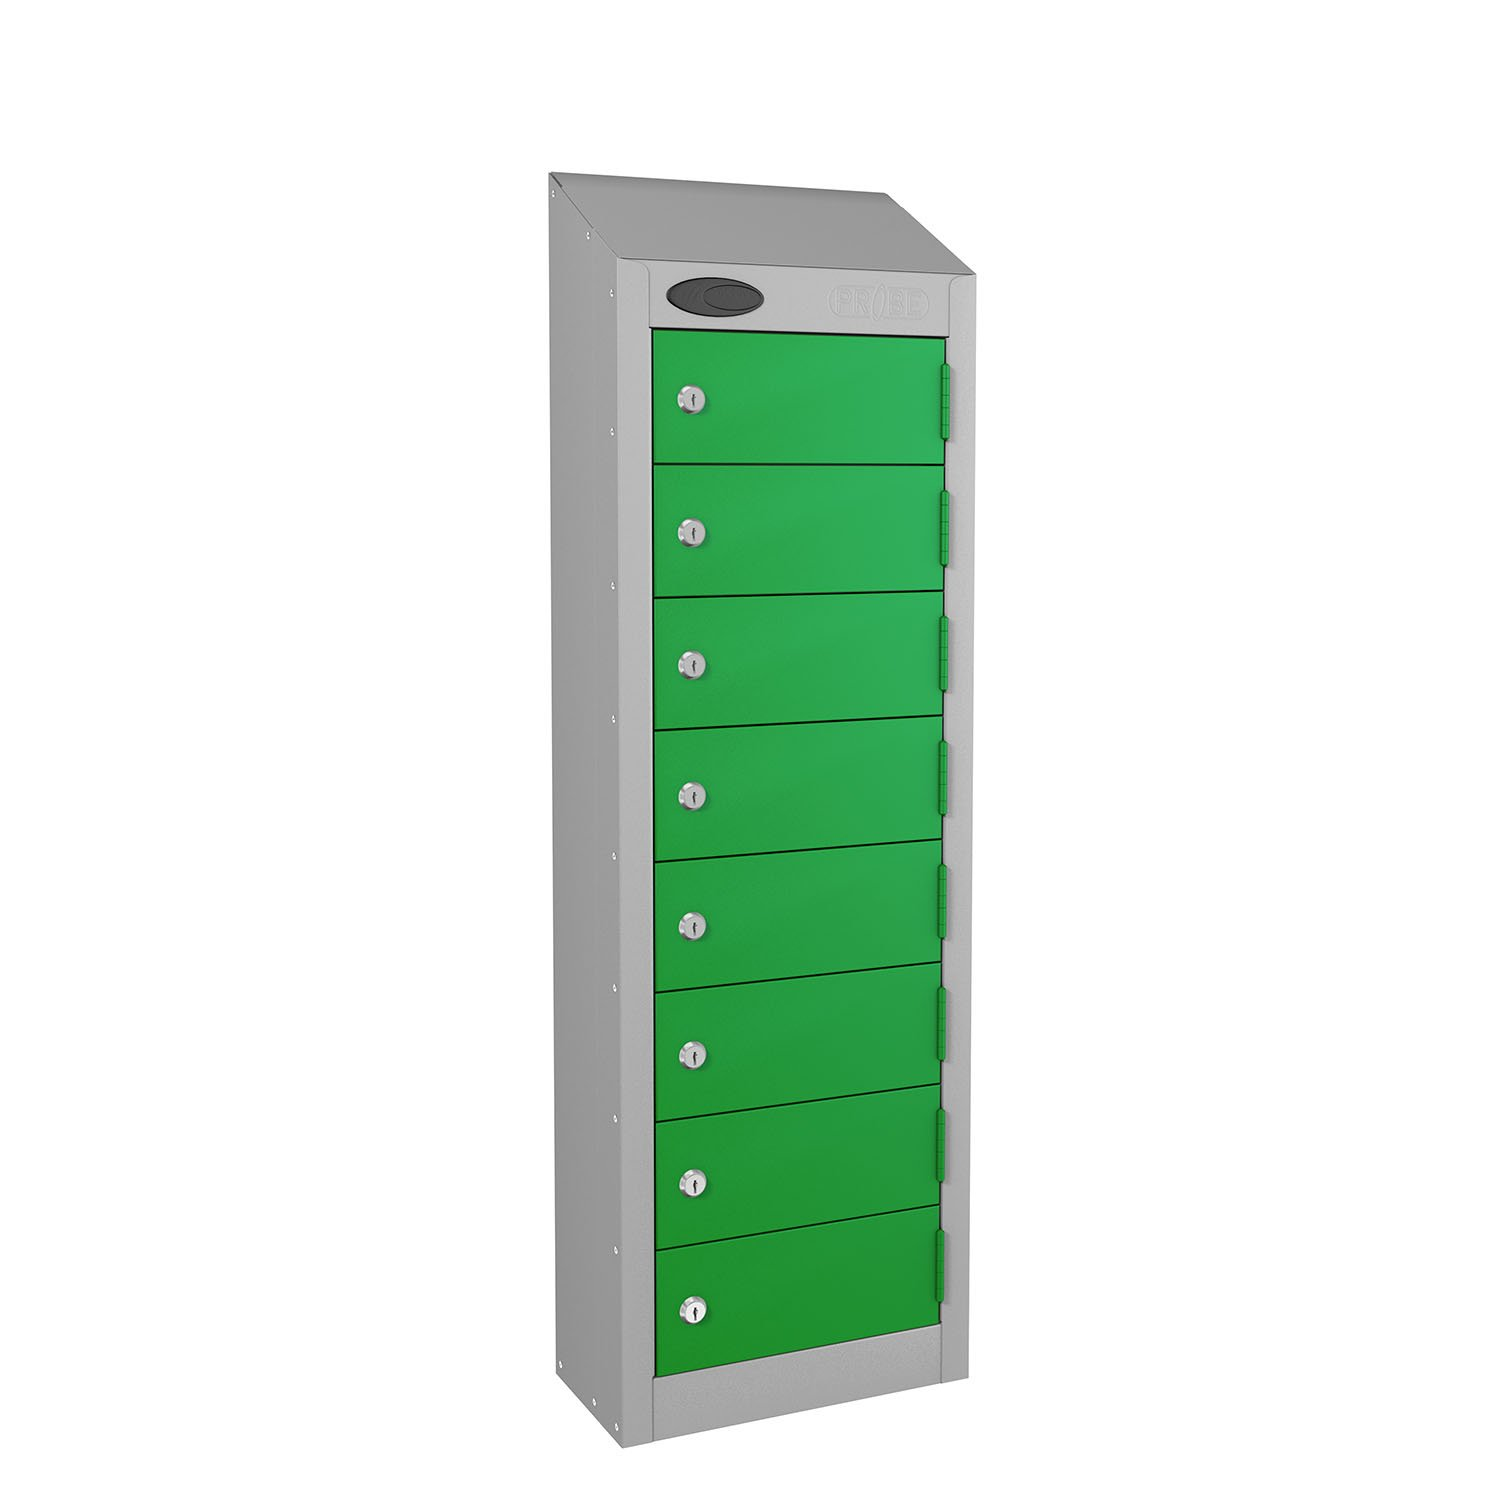 Probe 8 doors small compartment personal lockers in green colour